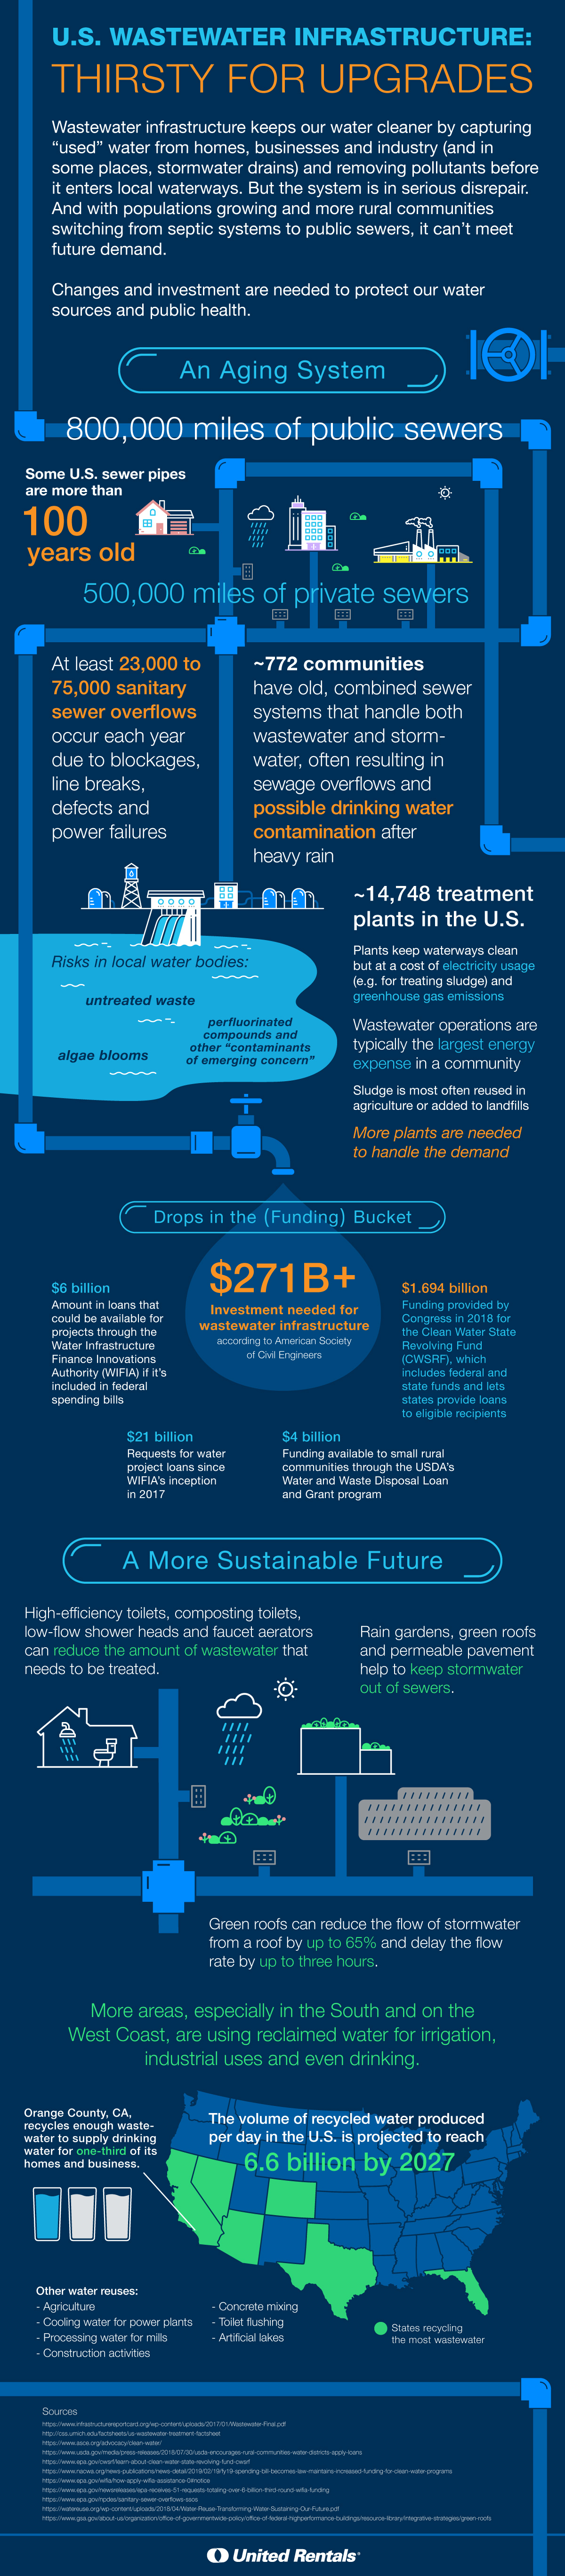 Wastewater Infographic